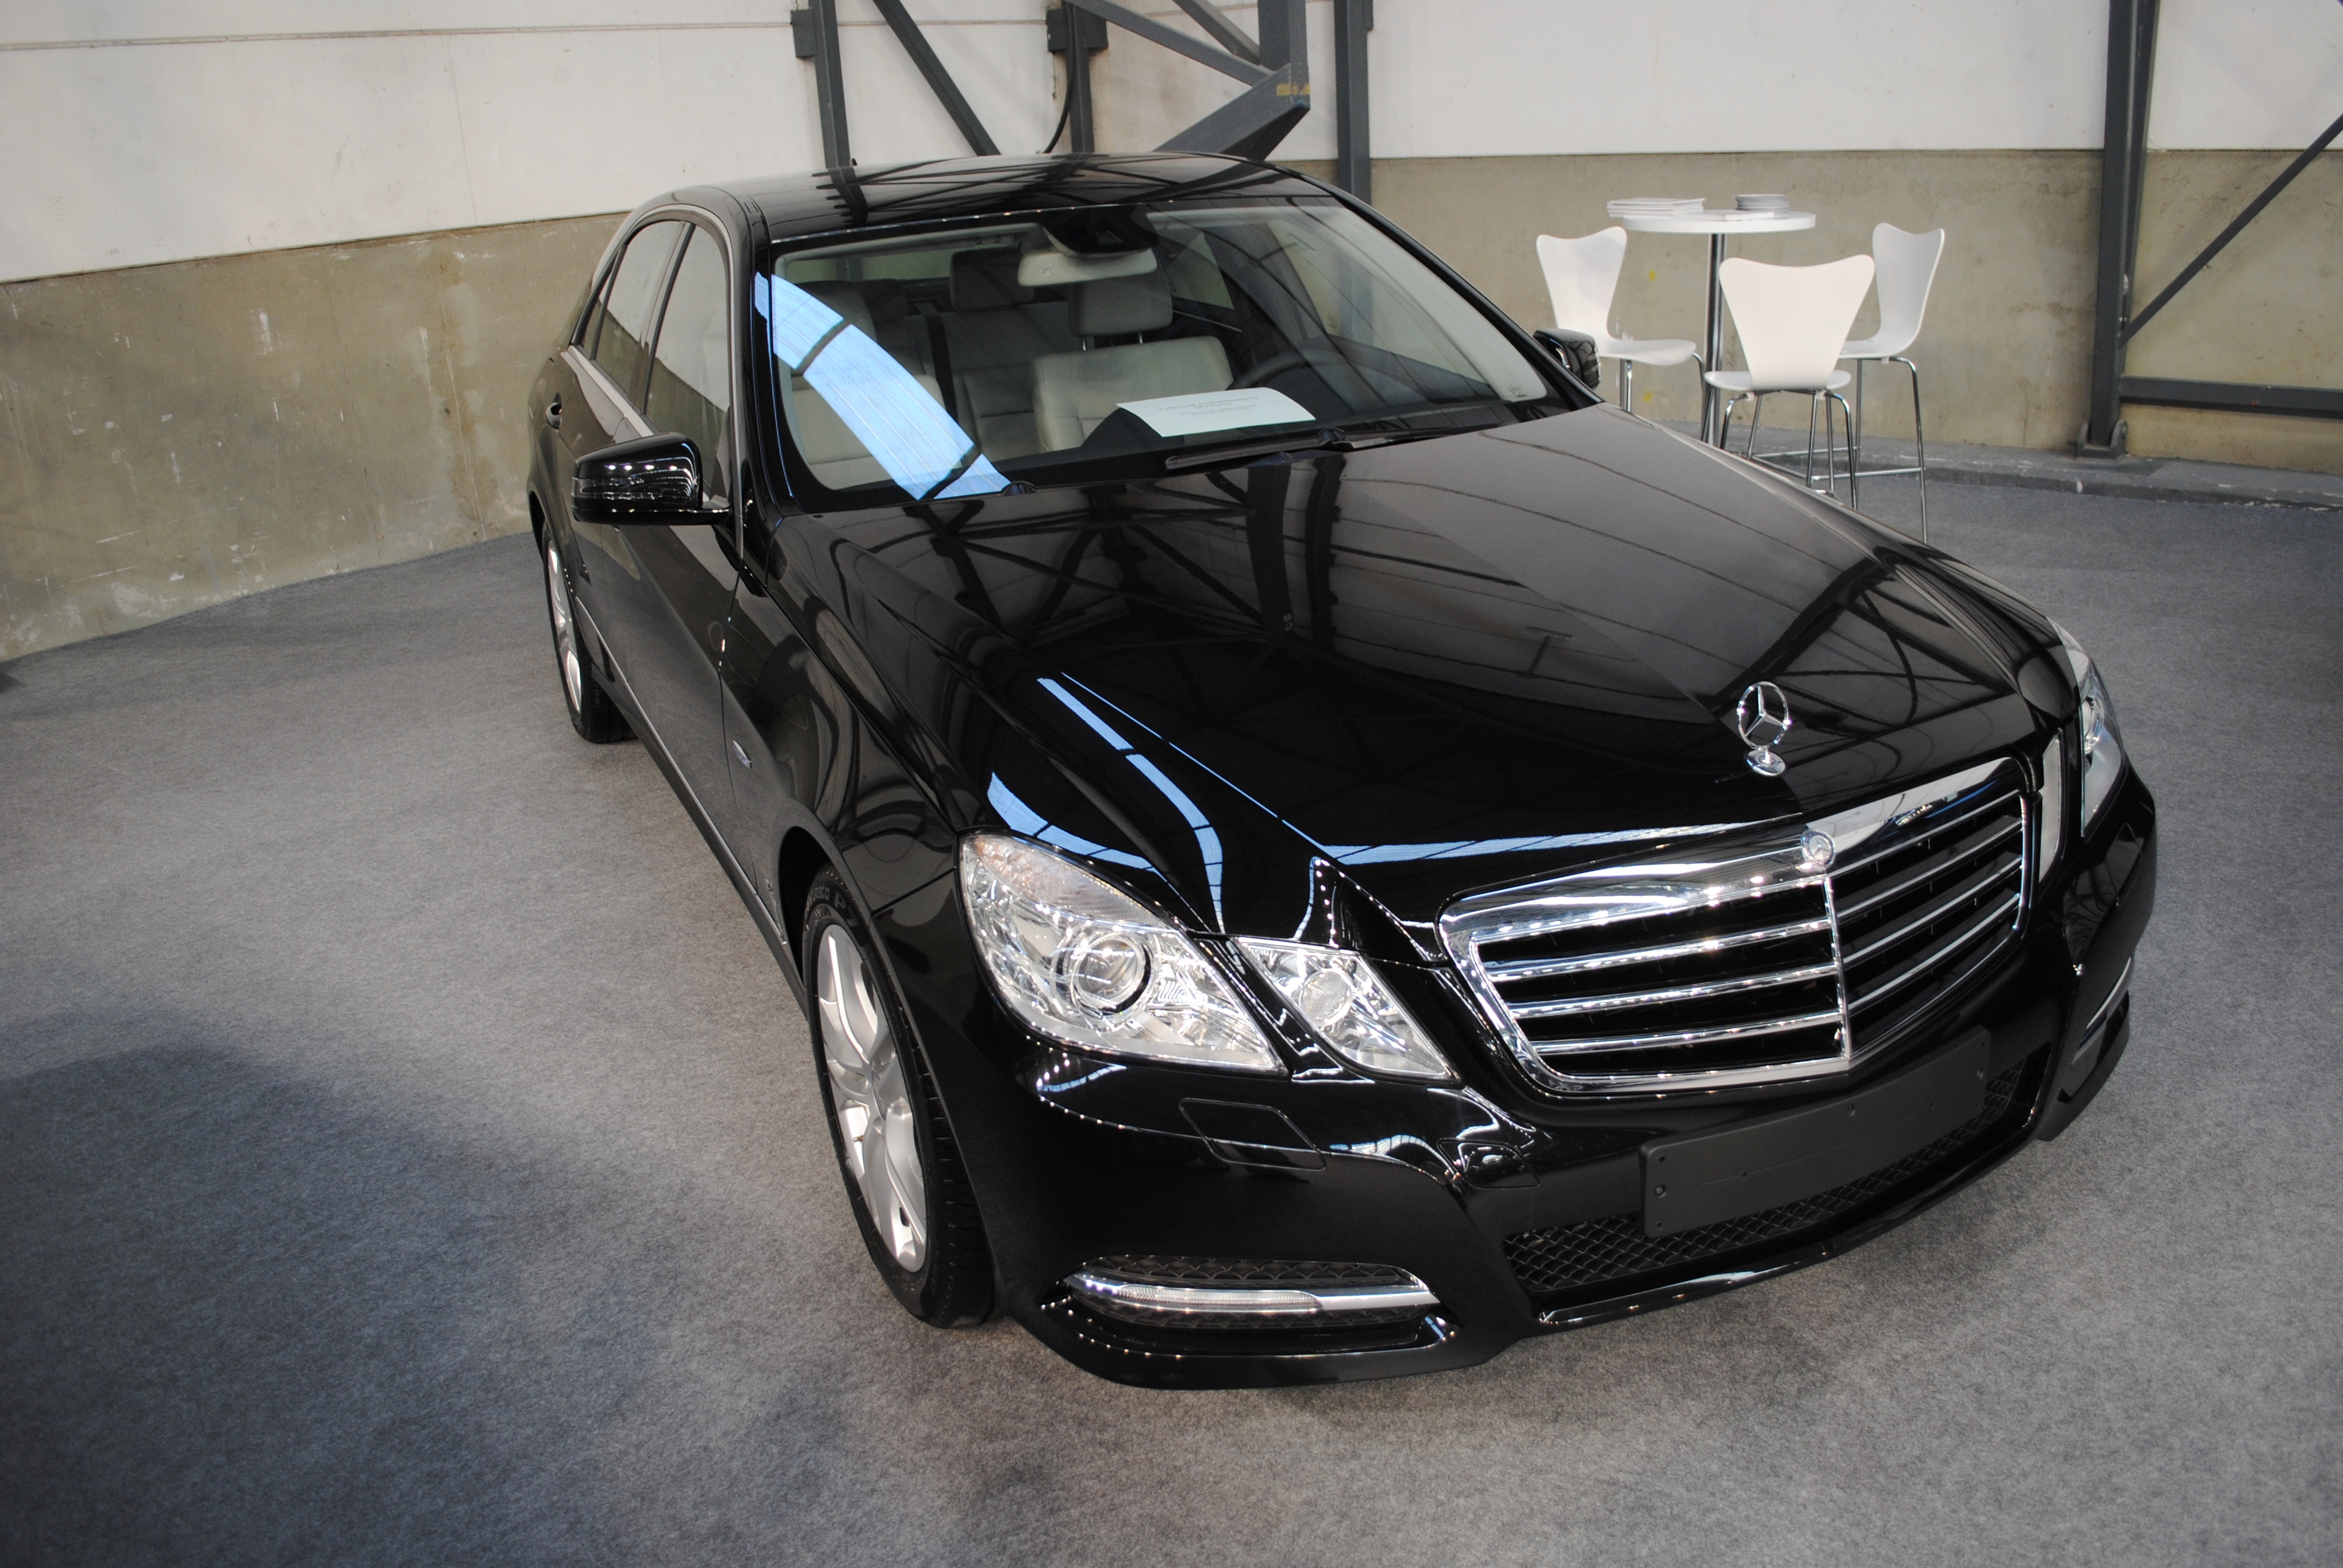 ficheiro mercedes e250 cdi 2012 ifevi jpg wikipedia a enciclopedia libre. Black Bedroom Furniture Sets. Home Design Ideas